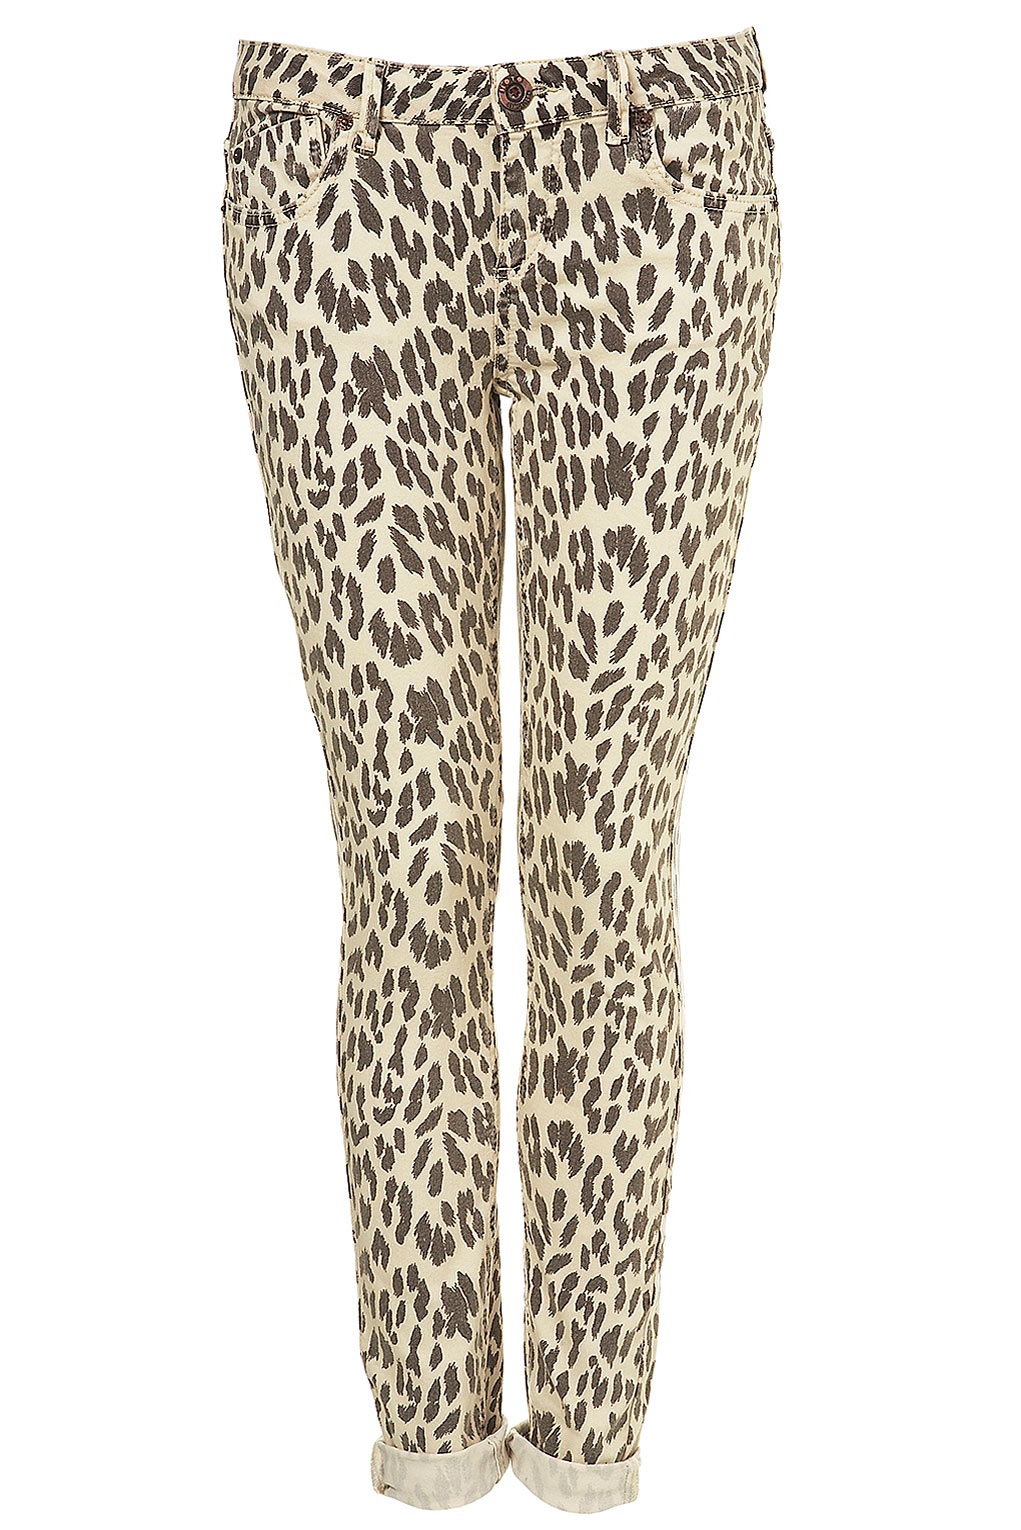 Daily crave: Topshop leopard print skinny jeans | Hey Crazy